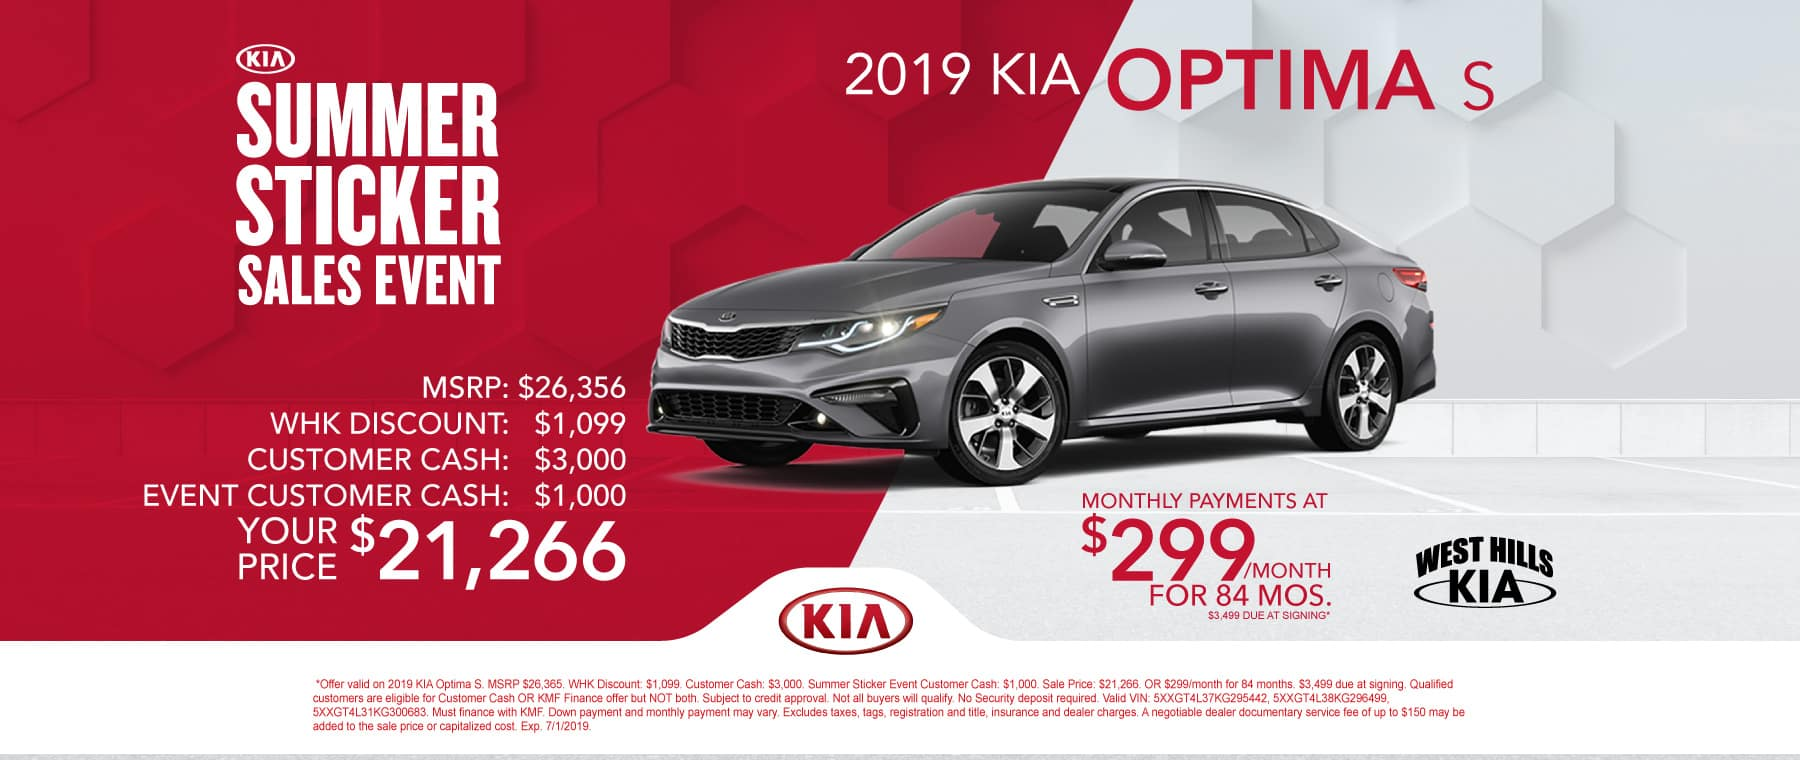 2019 Kia Optima S  MSRP: $26,365 WHK Discount: $1,099 Customer Cash: $3,000  Summer Sticker Event Customer Cash: $1,000 Sale Price: $21,266 OR $299/month for 84 months  $3,499 Due at Signing   *Offer valid on 2019 KIA Optima S. MSRP $26,365. WHK Discount: $1,099. Customer Cash: $3,000. Summer Sticker Event Customer Cash: $1,000. Sale Price: $21,266. OR $299/month for 84 months. $3,499 due at signing. Qualified customers are eligible for Customer Cash OR KMF Finance offer but NOT both. Subject to credit approval. Not all buyers will qualify. No Security deposit required. Valid VIN: 5XXGT4L37KG295442, 5XXGT4L38KG296499, 5XXGT4L31KG300683. Must finance with KMF. Down payment and monthly payment may vary. Excludes taxes, tags, registration and title, insurance and dealer charges. A negotiable dealer documentary service fee of up to $150 may be added to the sale price or capitalized cost. Exp. 7/1/2019.